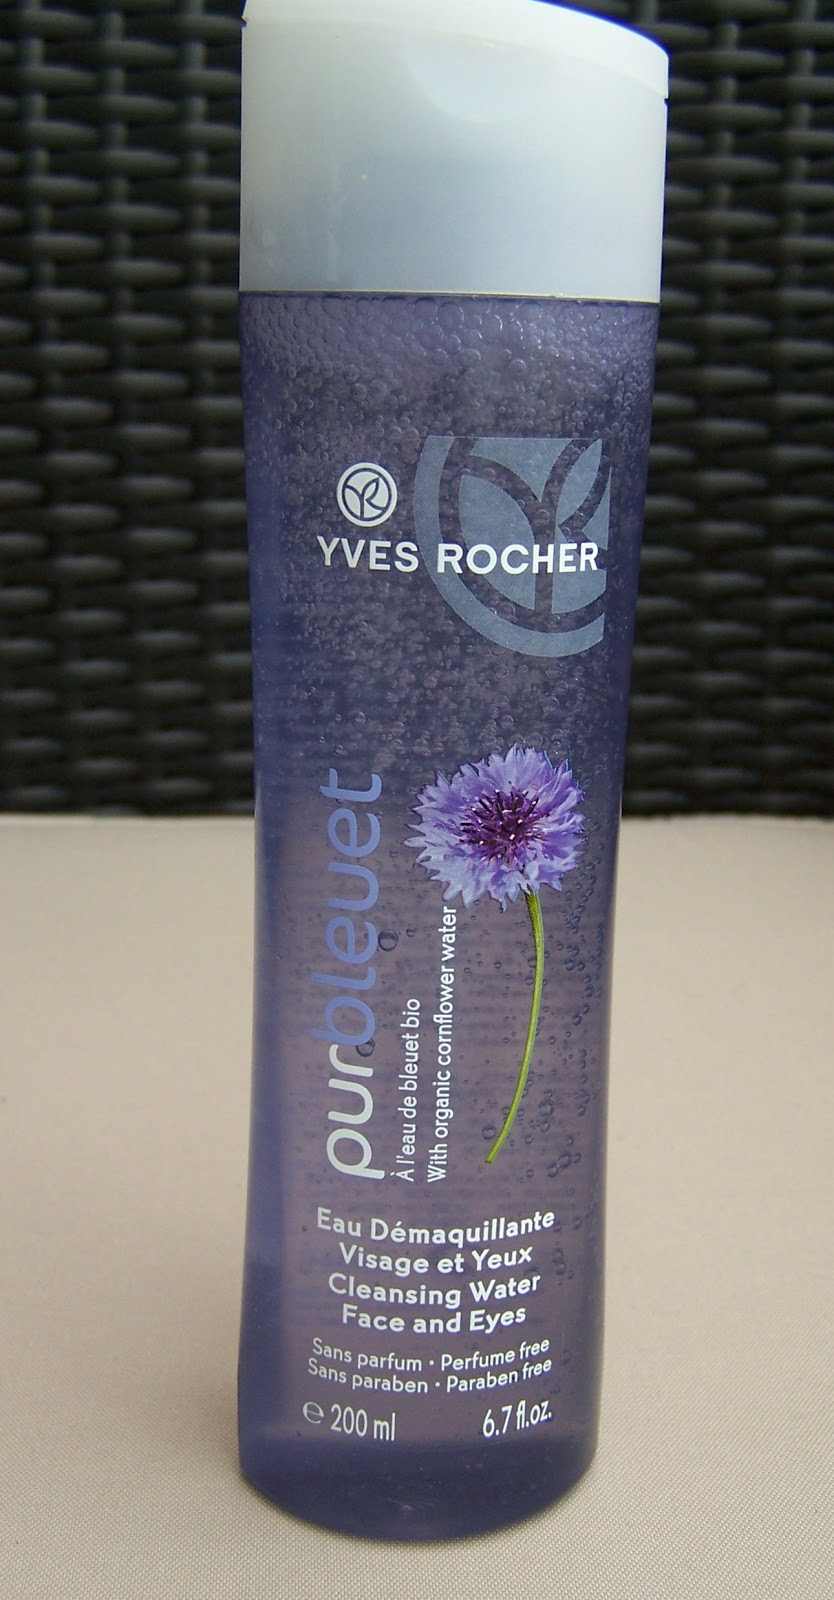 freckles flaws yves rocher cleansing water and makeup remover review